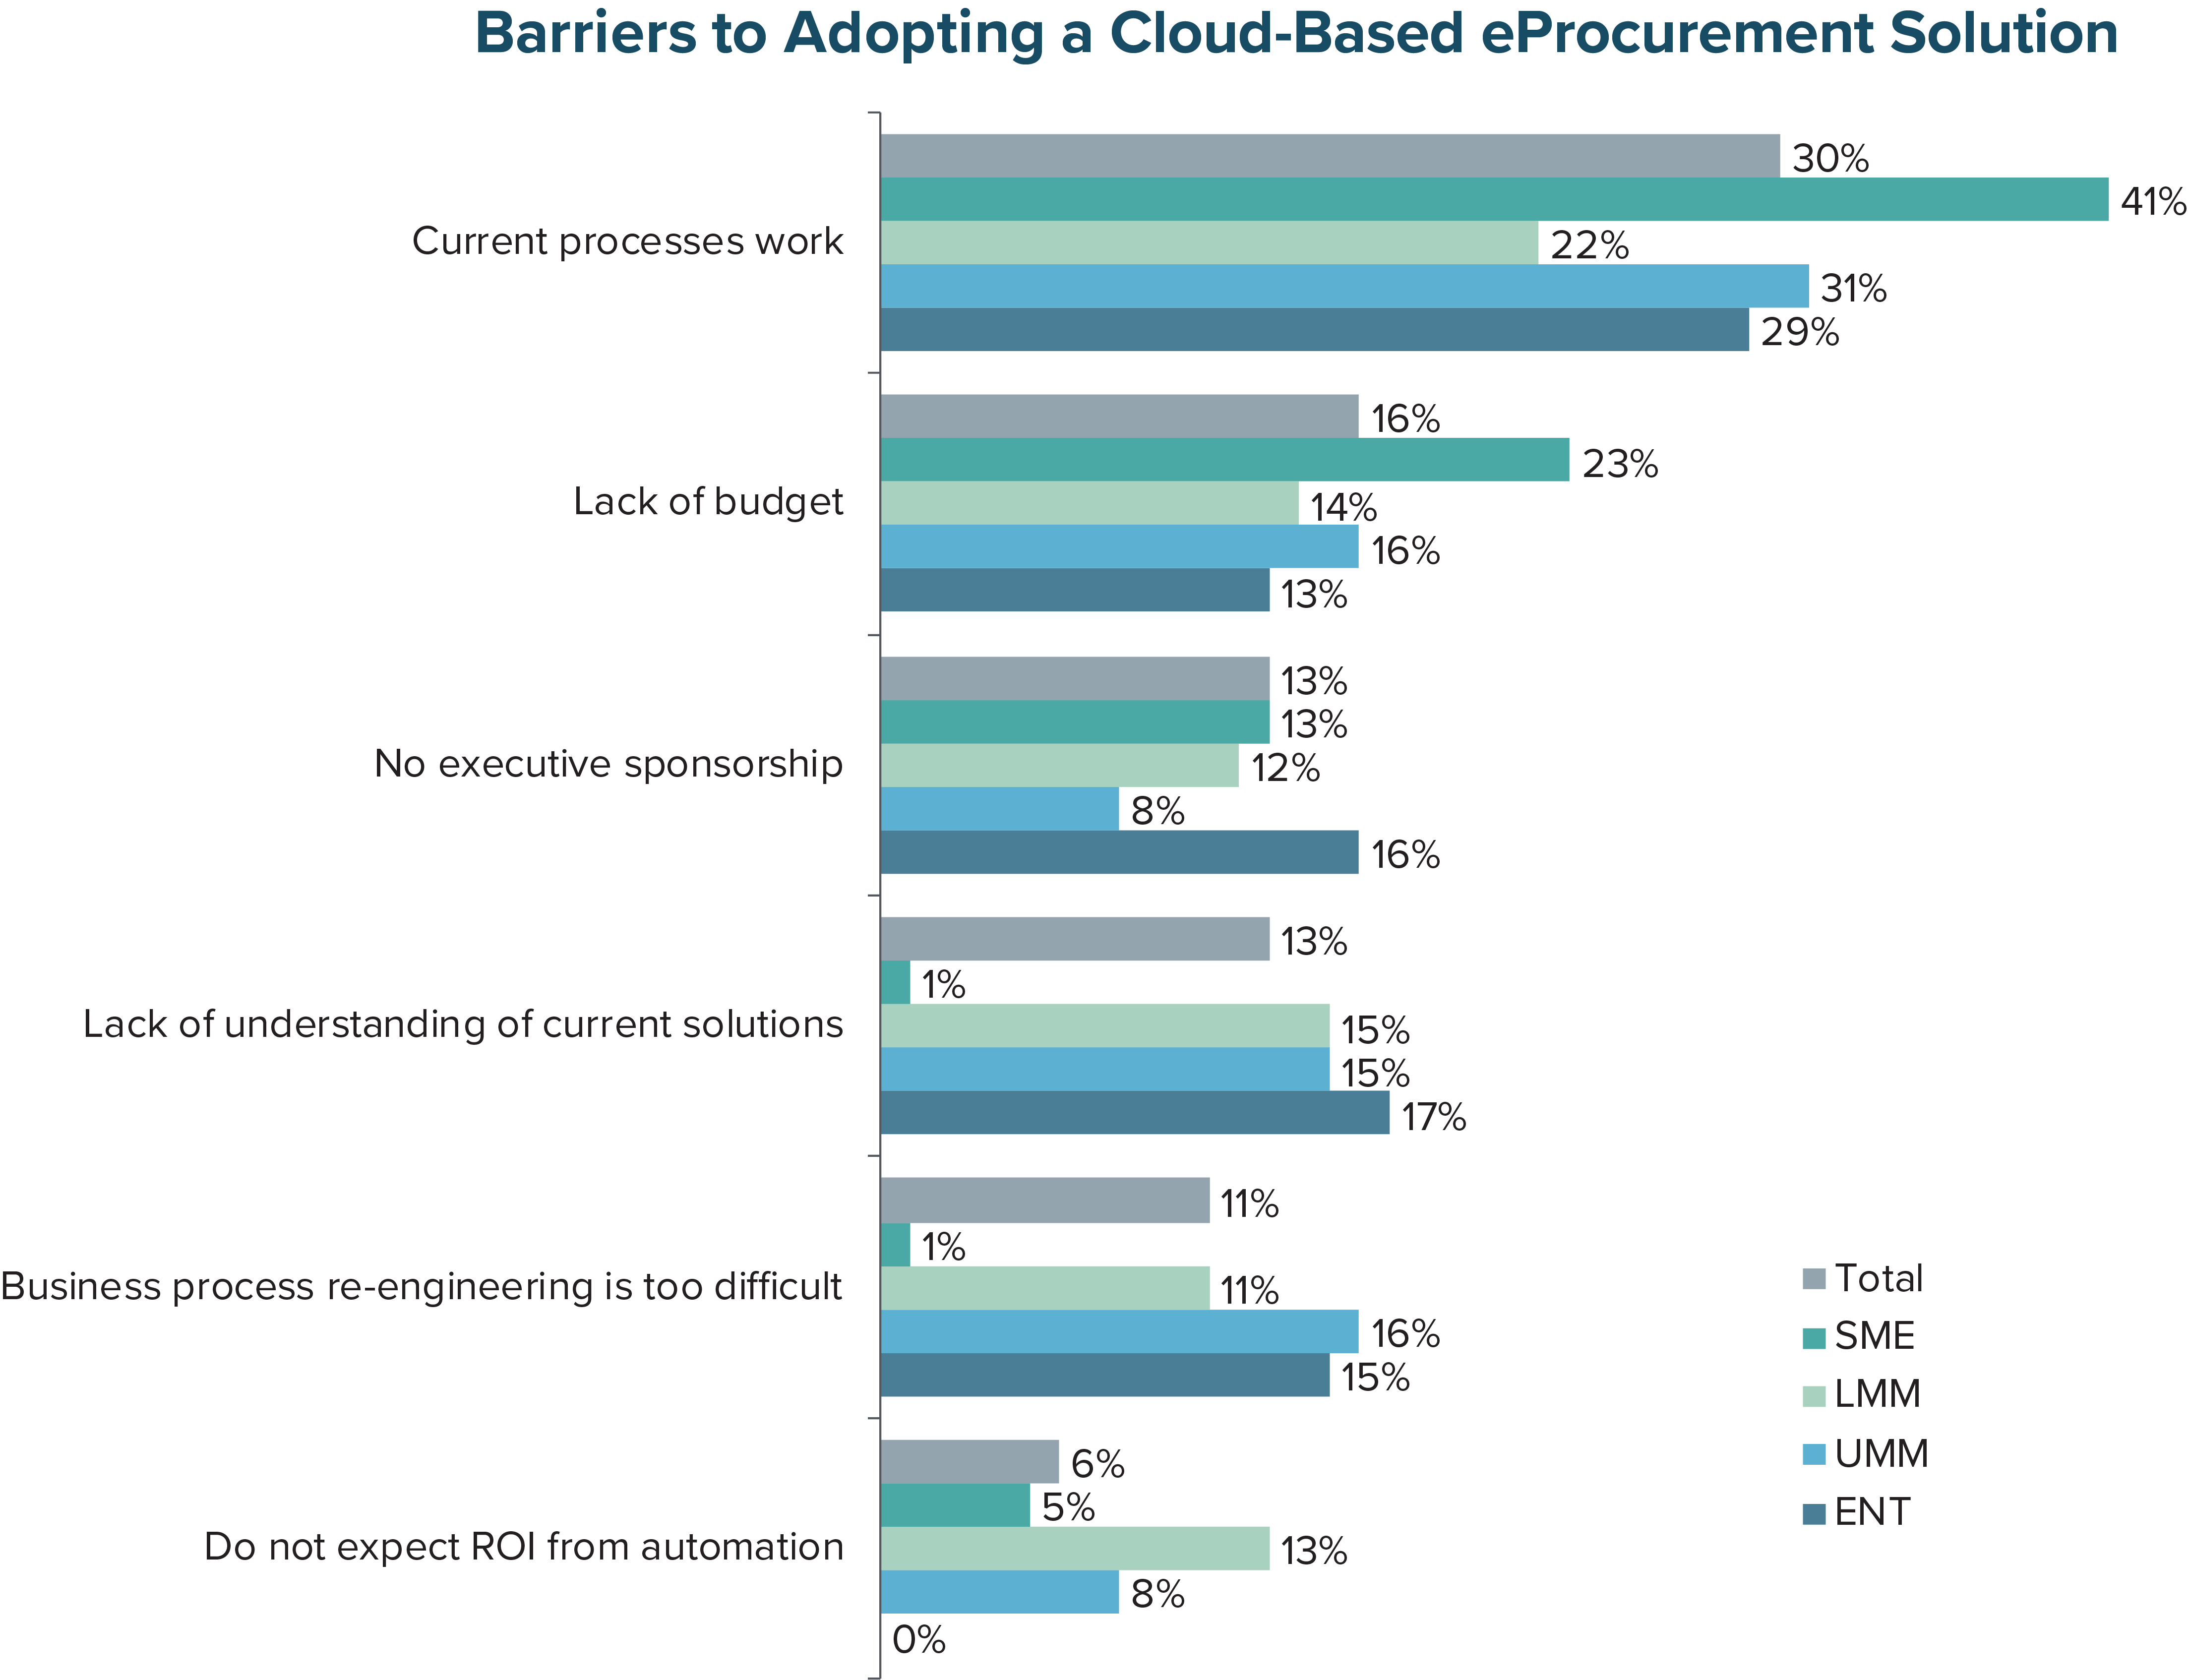 Barriers to Adopting a Cloud-Based eProcurement Solution